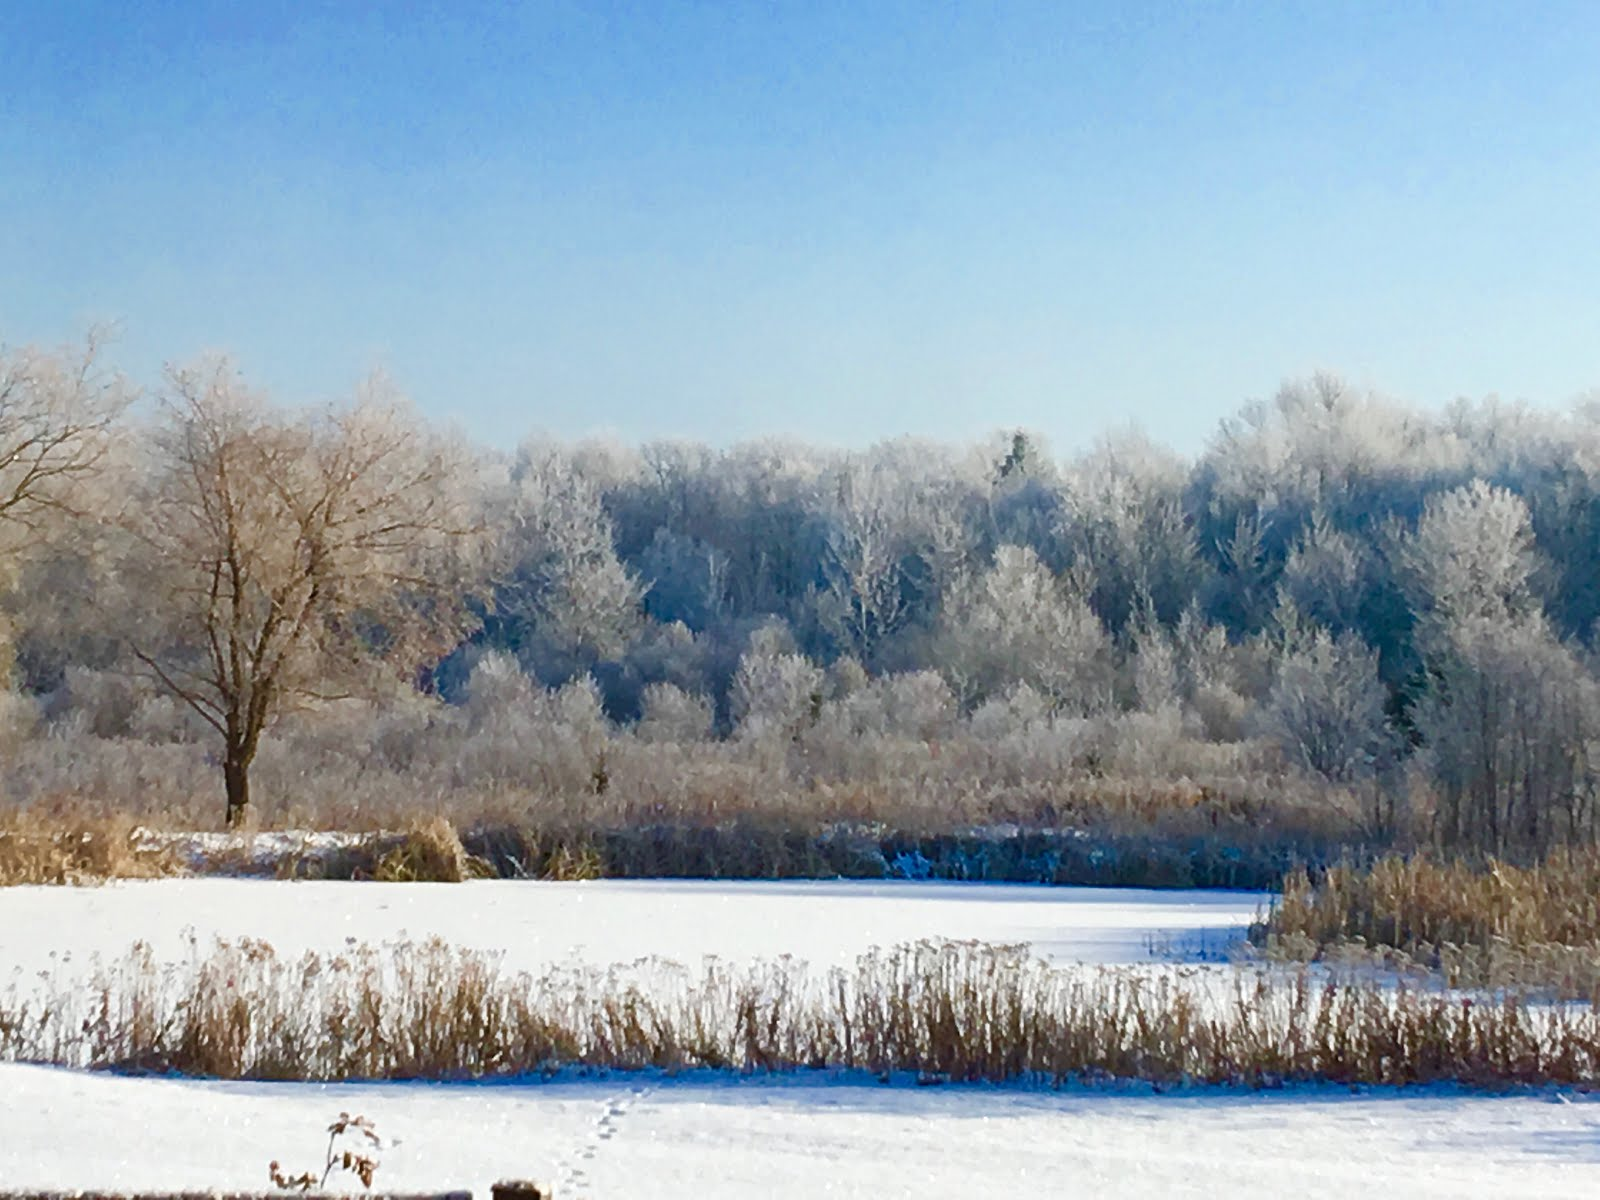 Frosty morning on the pond